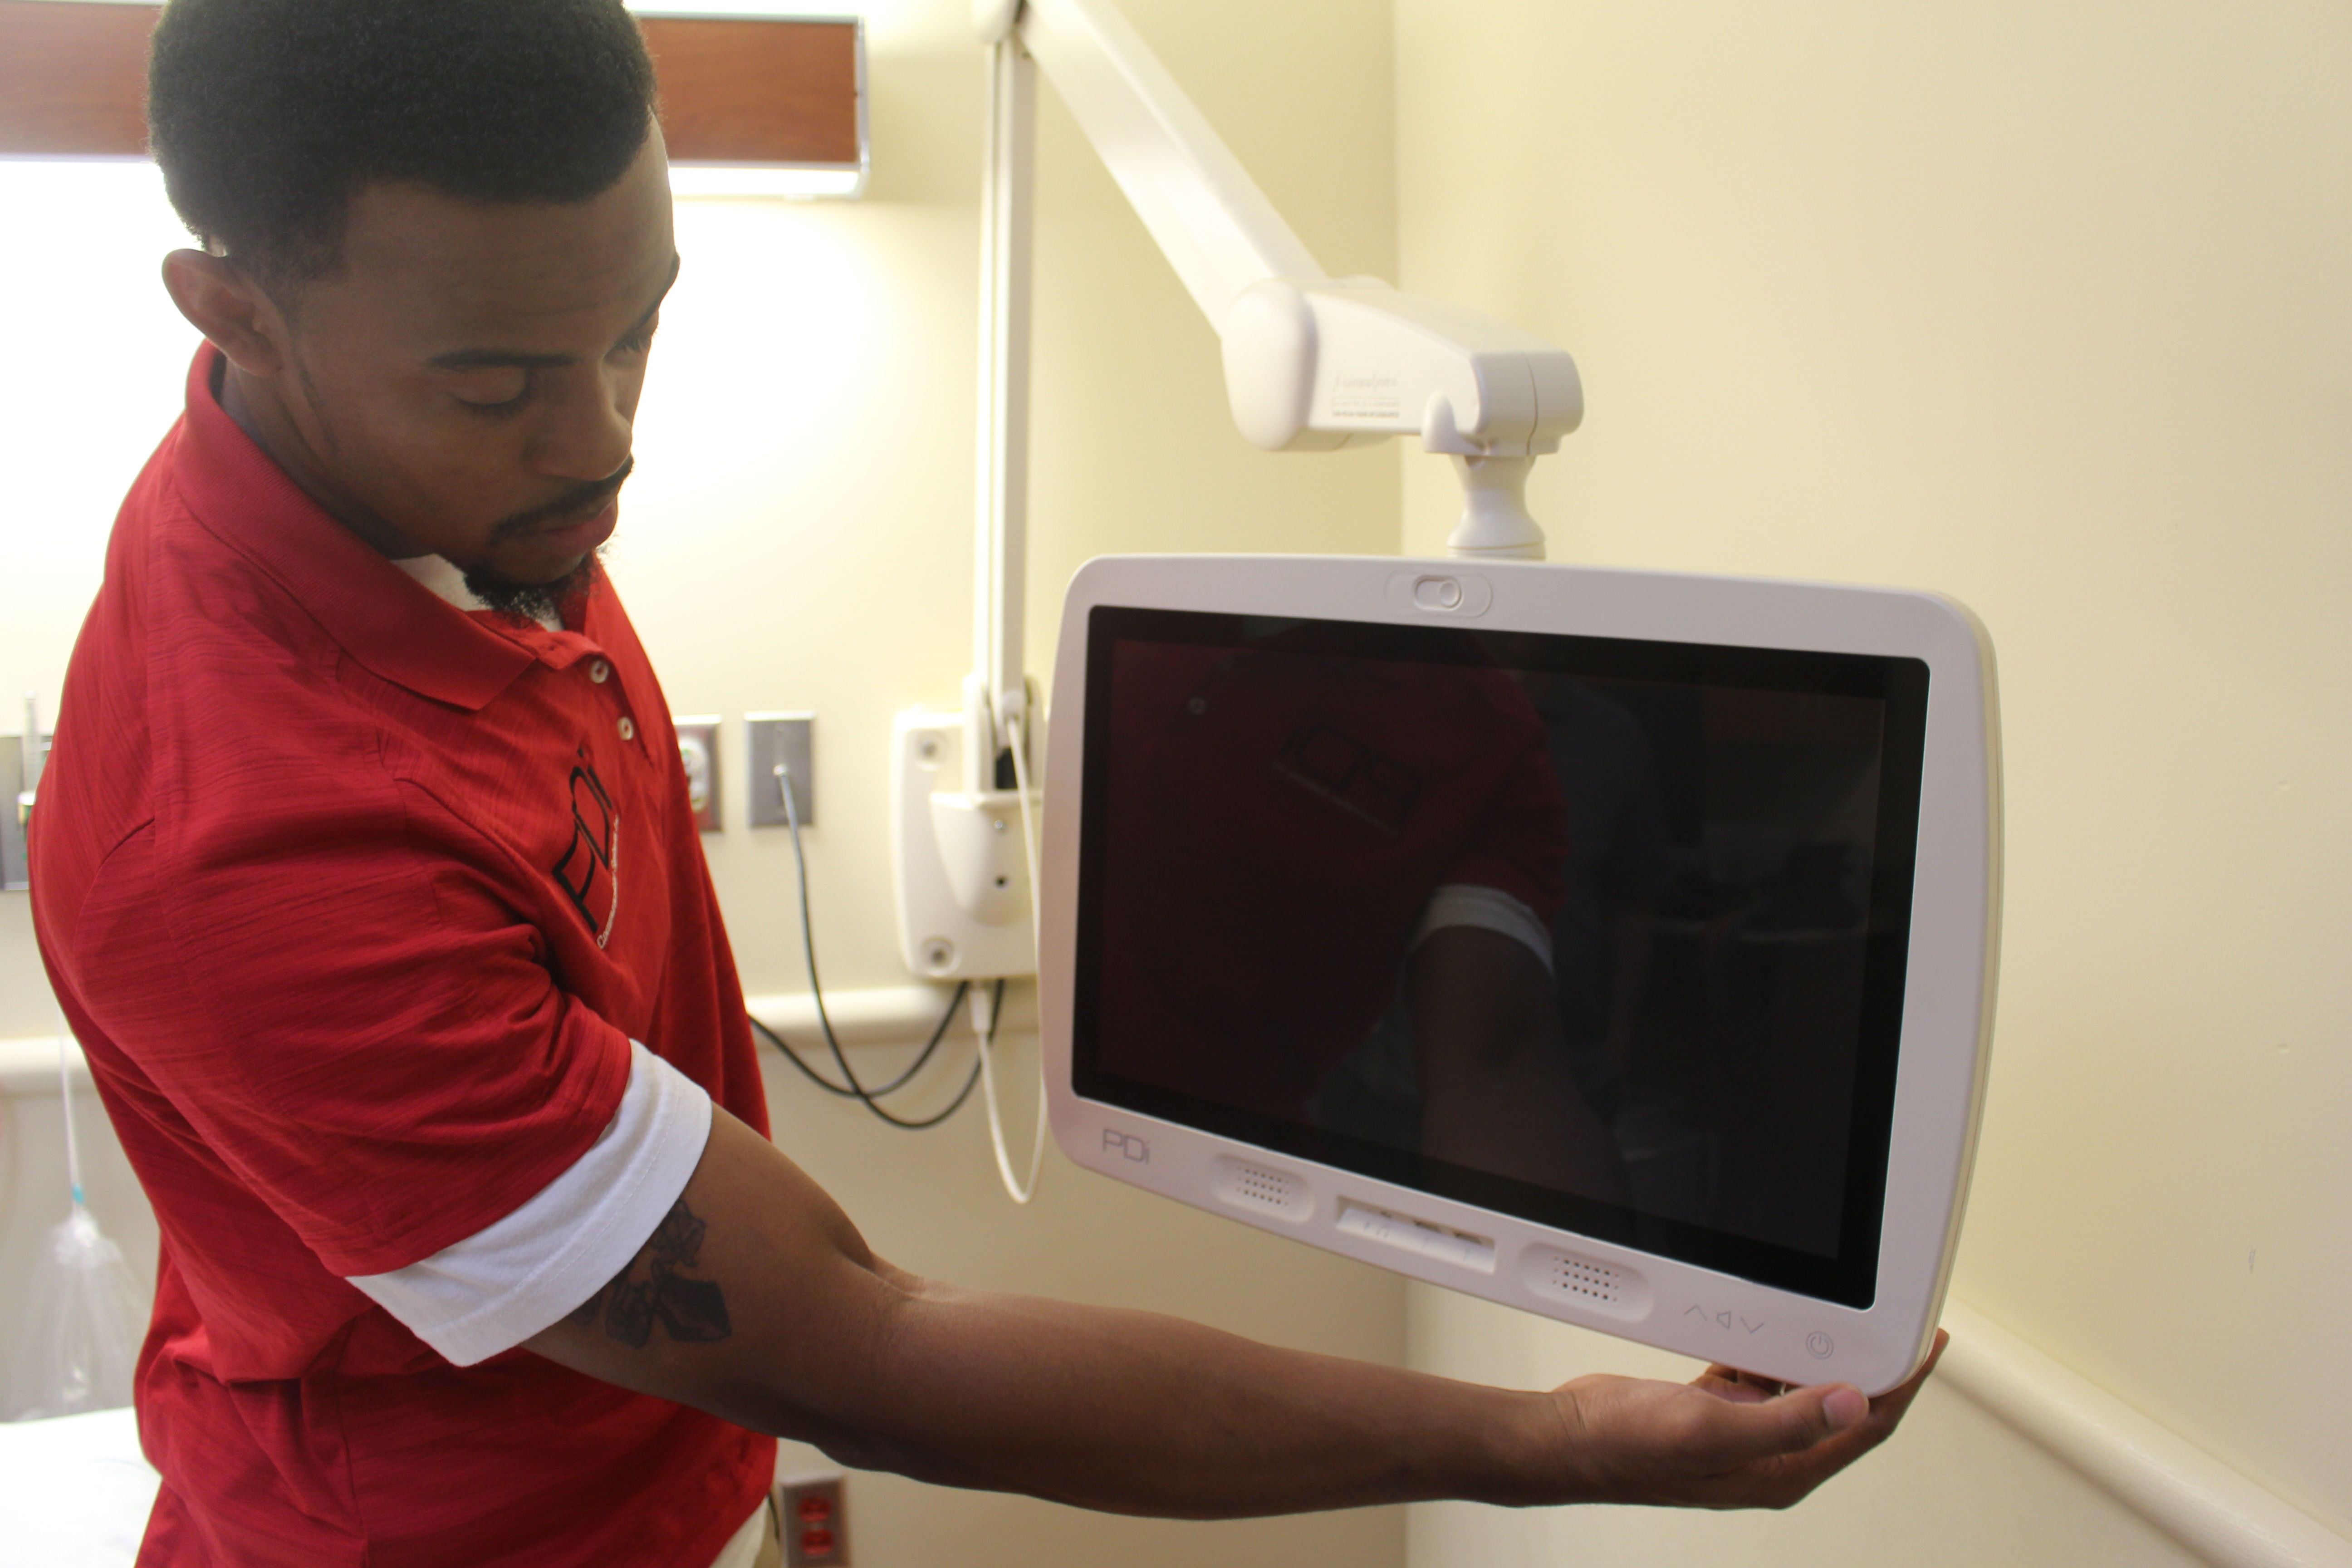 PDi ProServices TV Repair Technician in Hospital Room